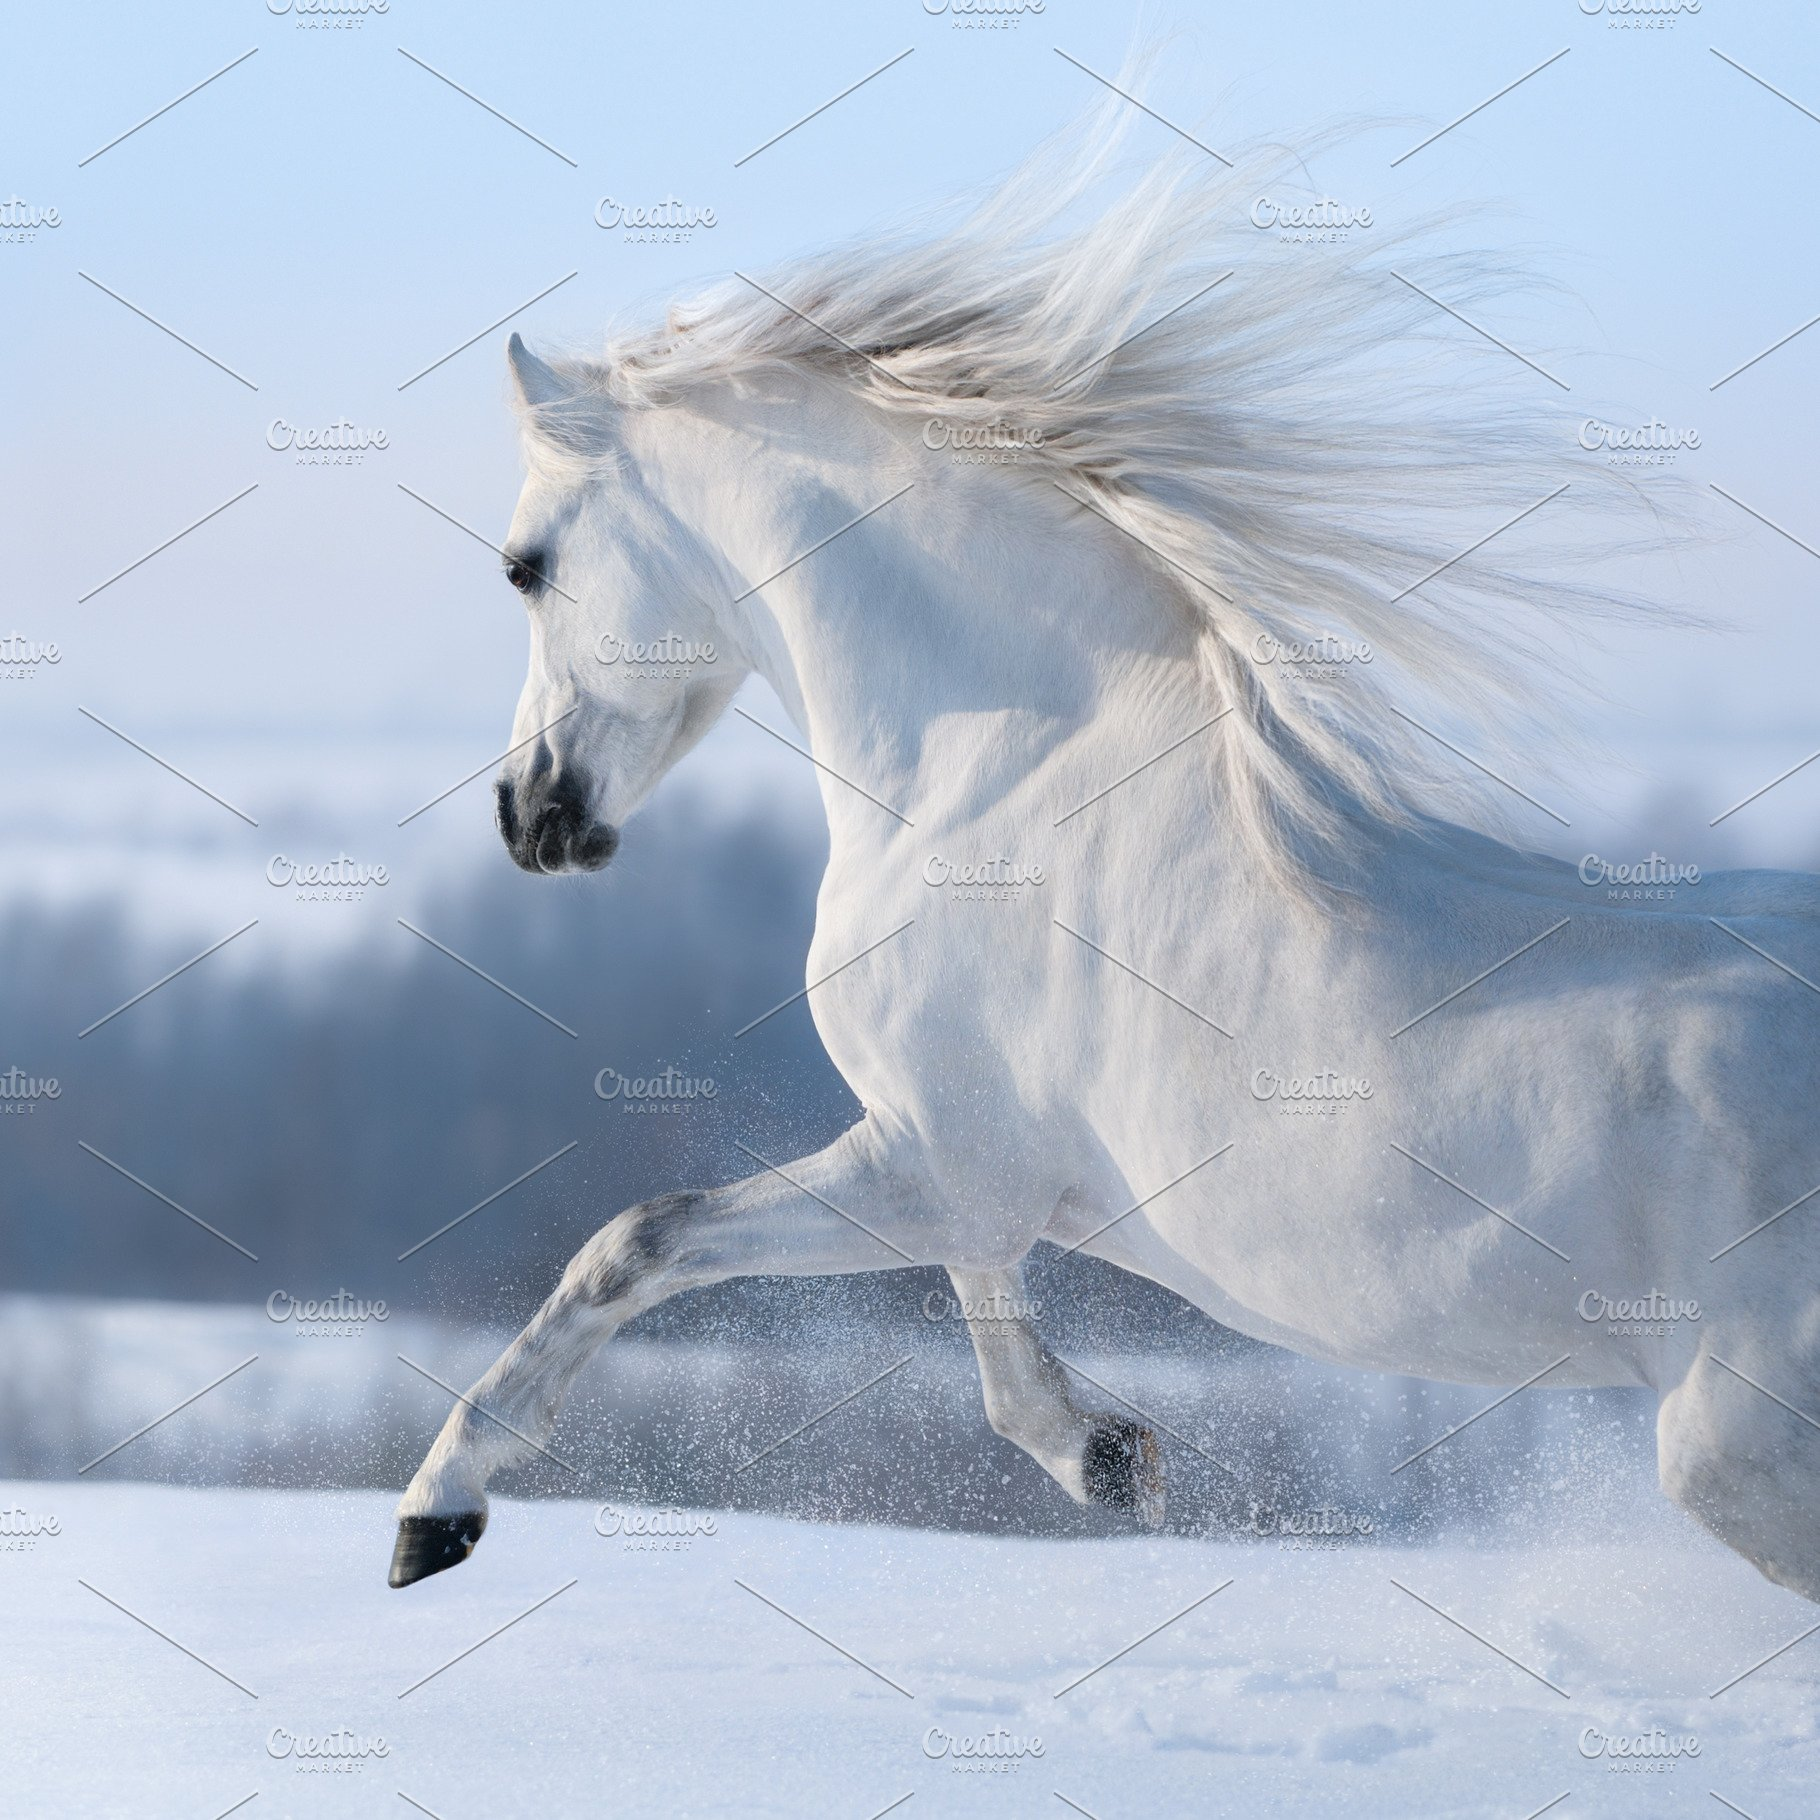 Beautiful white horse with long mane | High-Quality Stock Photos ...